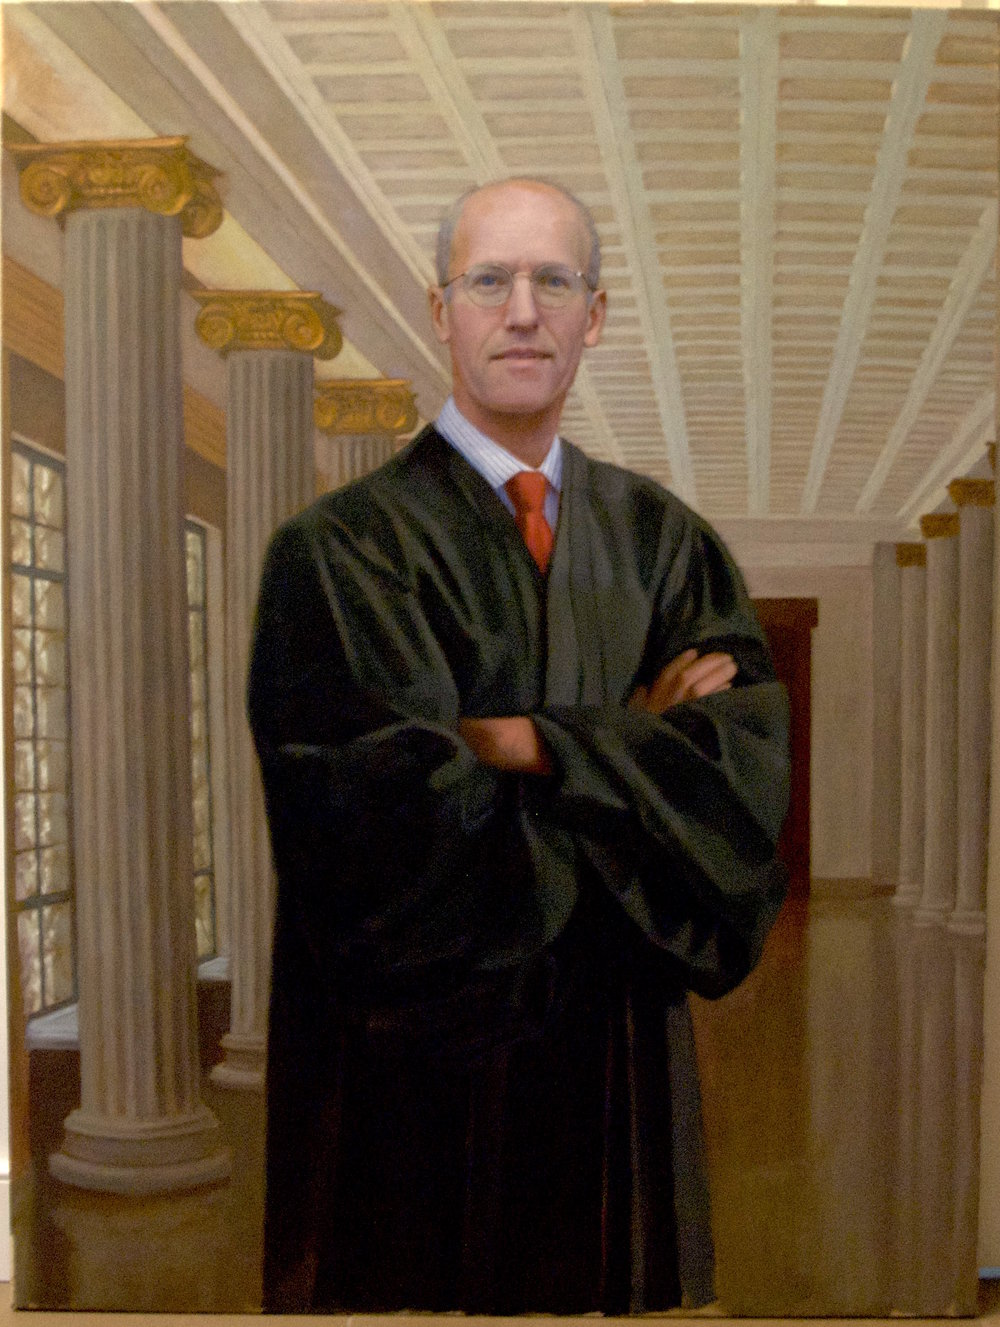 Judge Kravitz.jpg